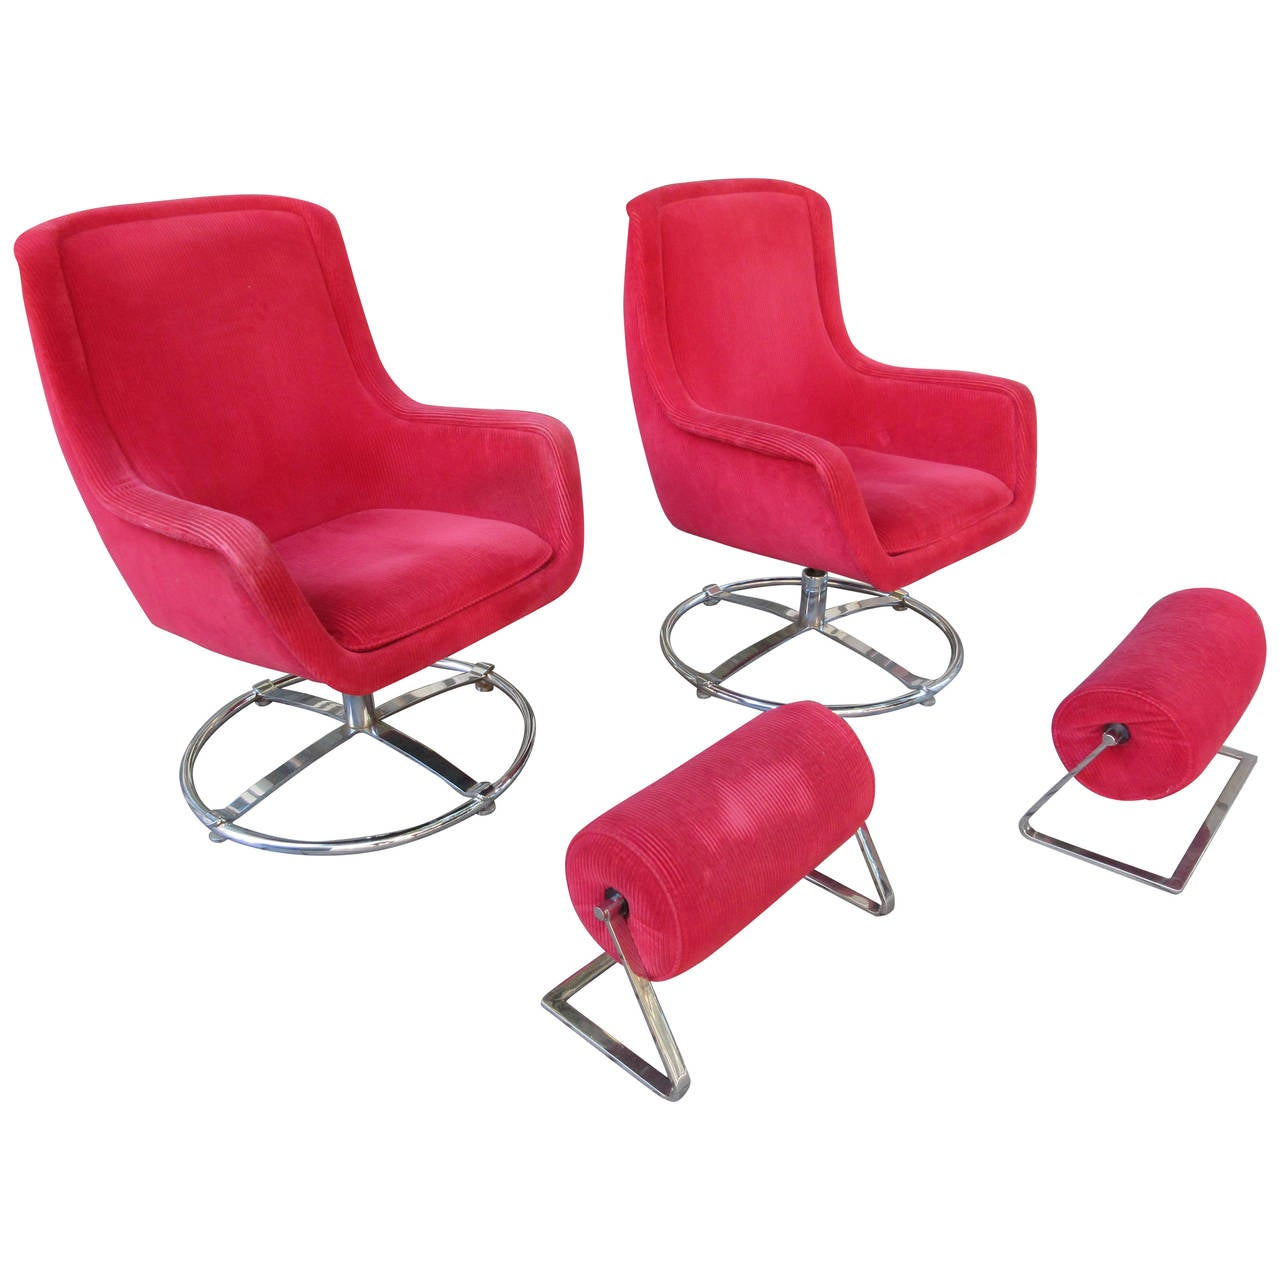 Ward Bennett Swivel Lounge Chair with Ottoman at 1stdibs